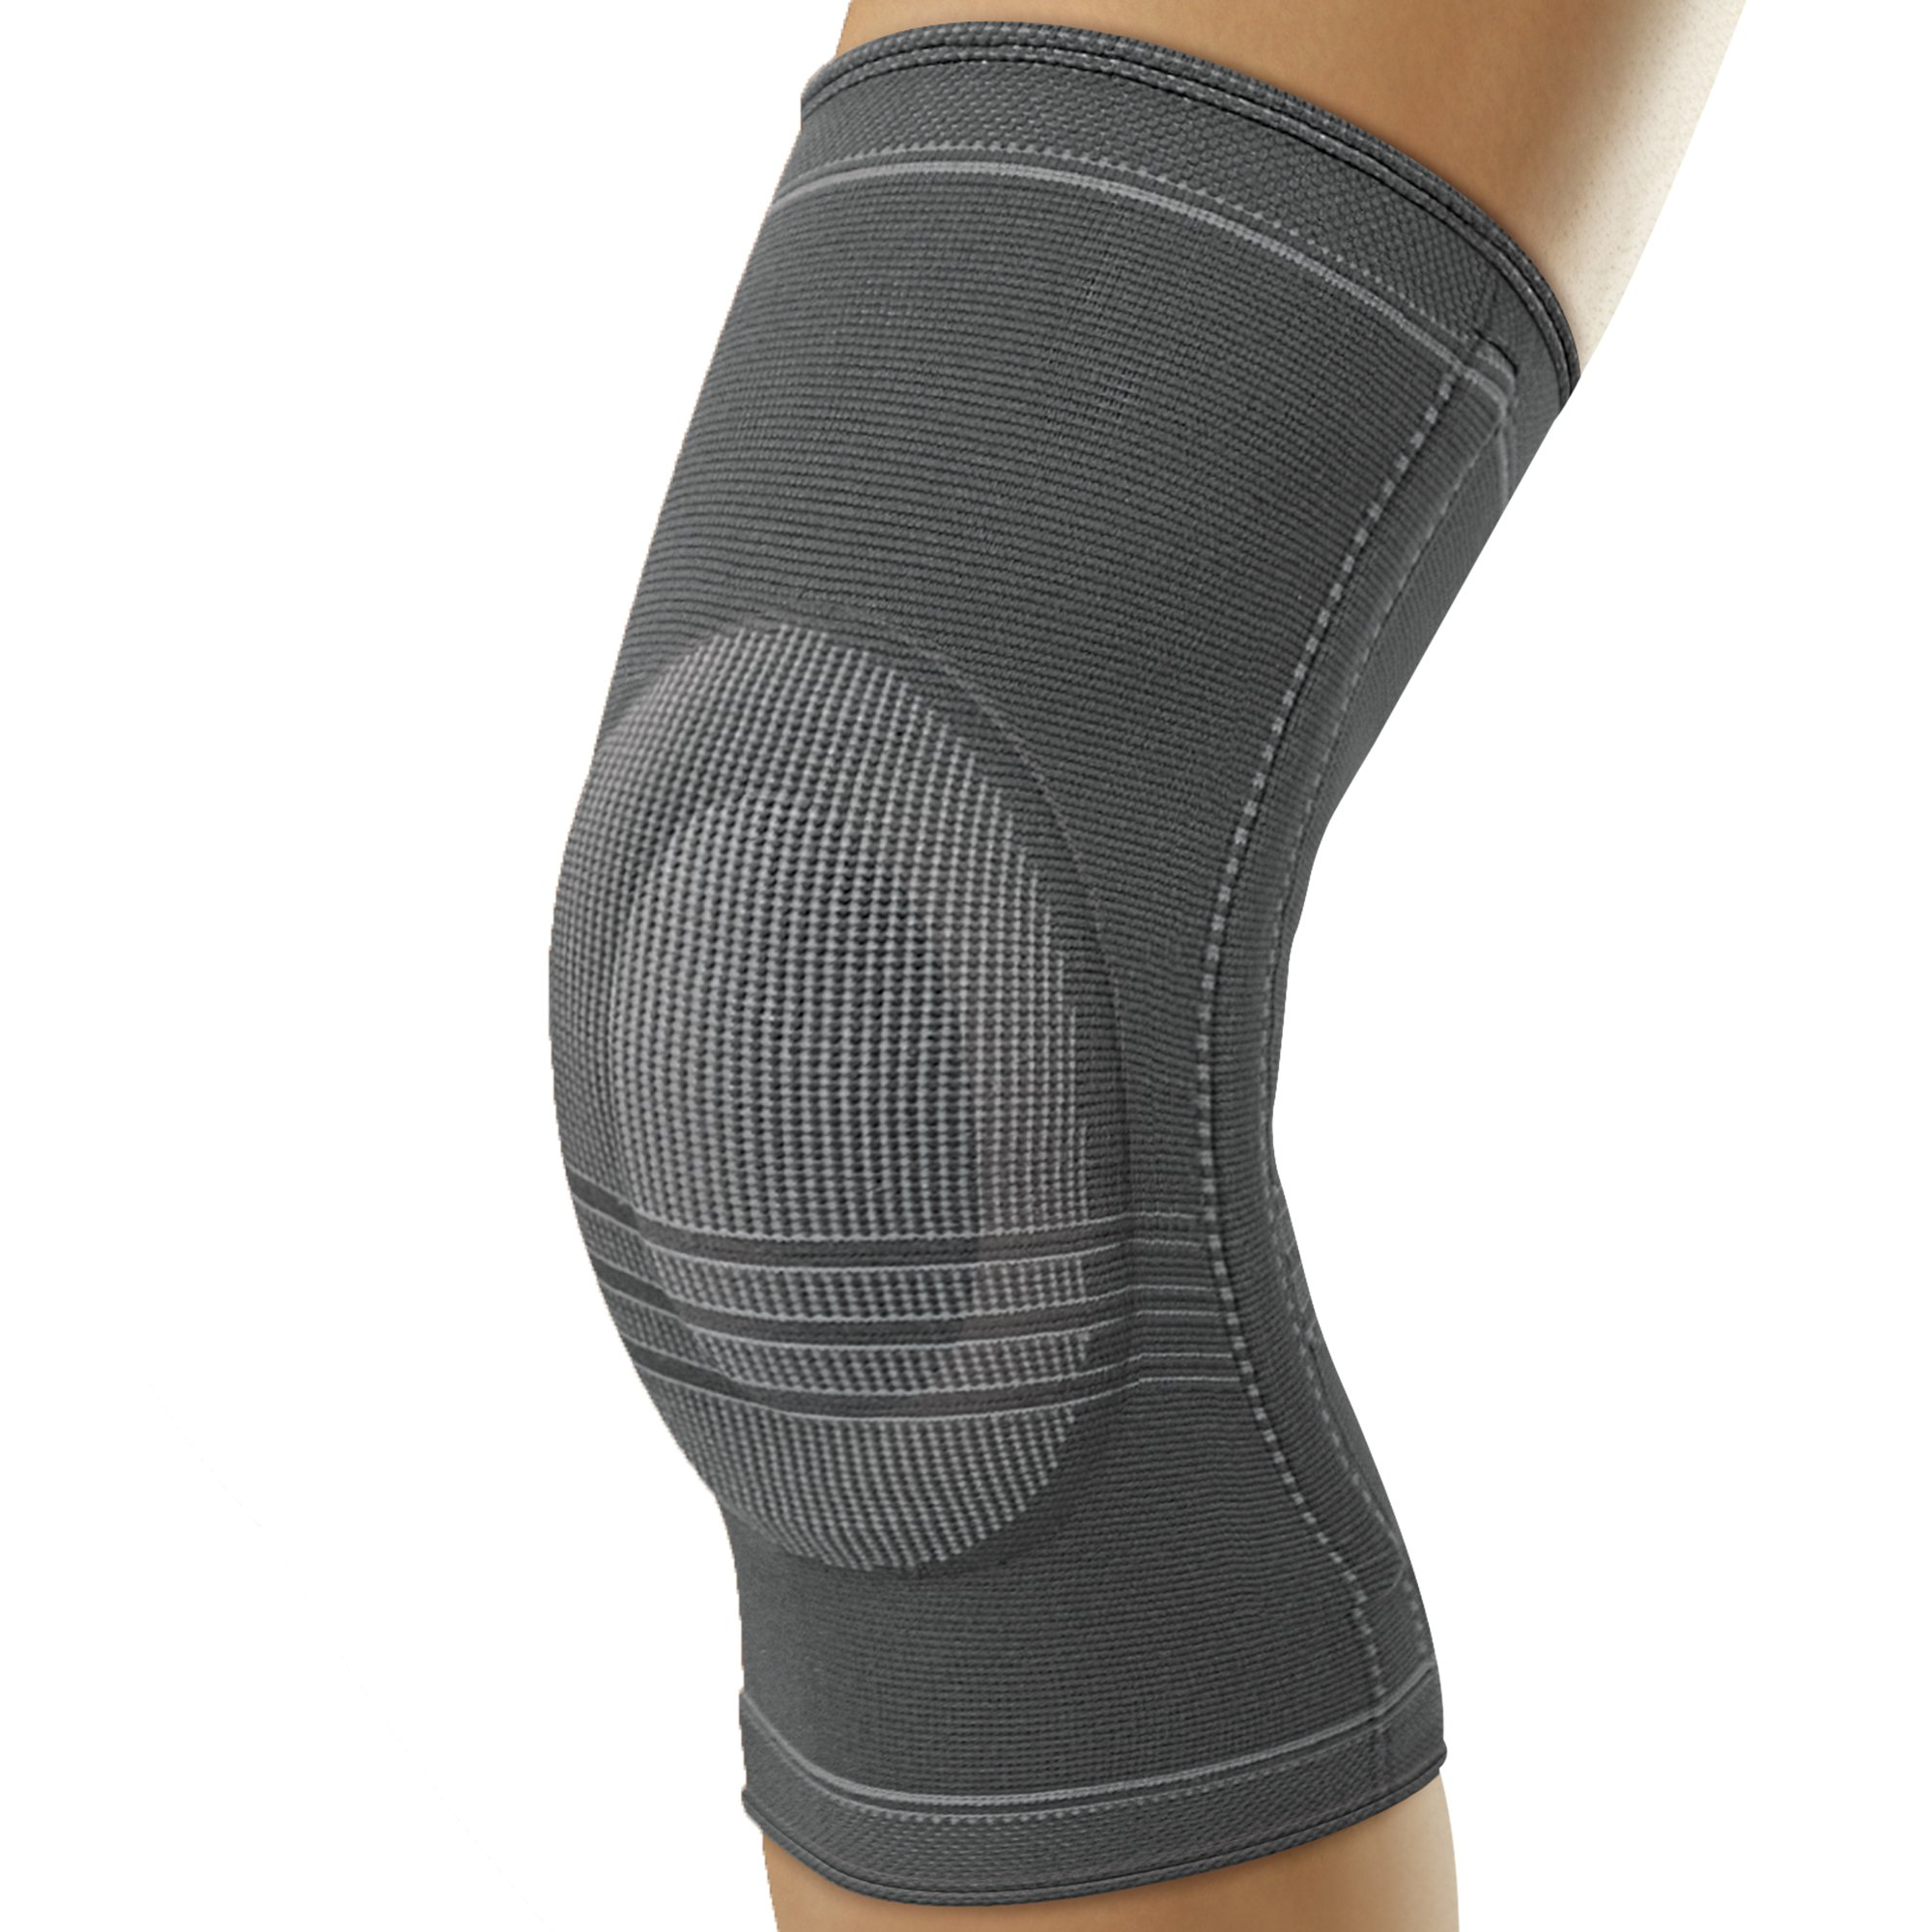 96df70e647 Futuro Active Knit Knee Stabilizer, Moderate Stabilizing Support, X-Large,  Gray